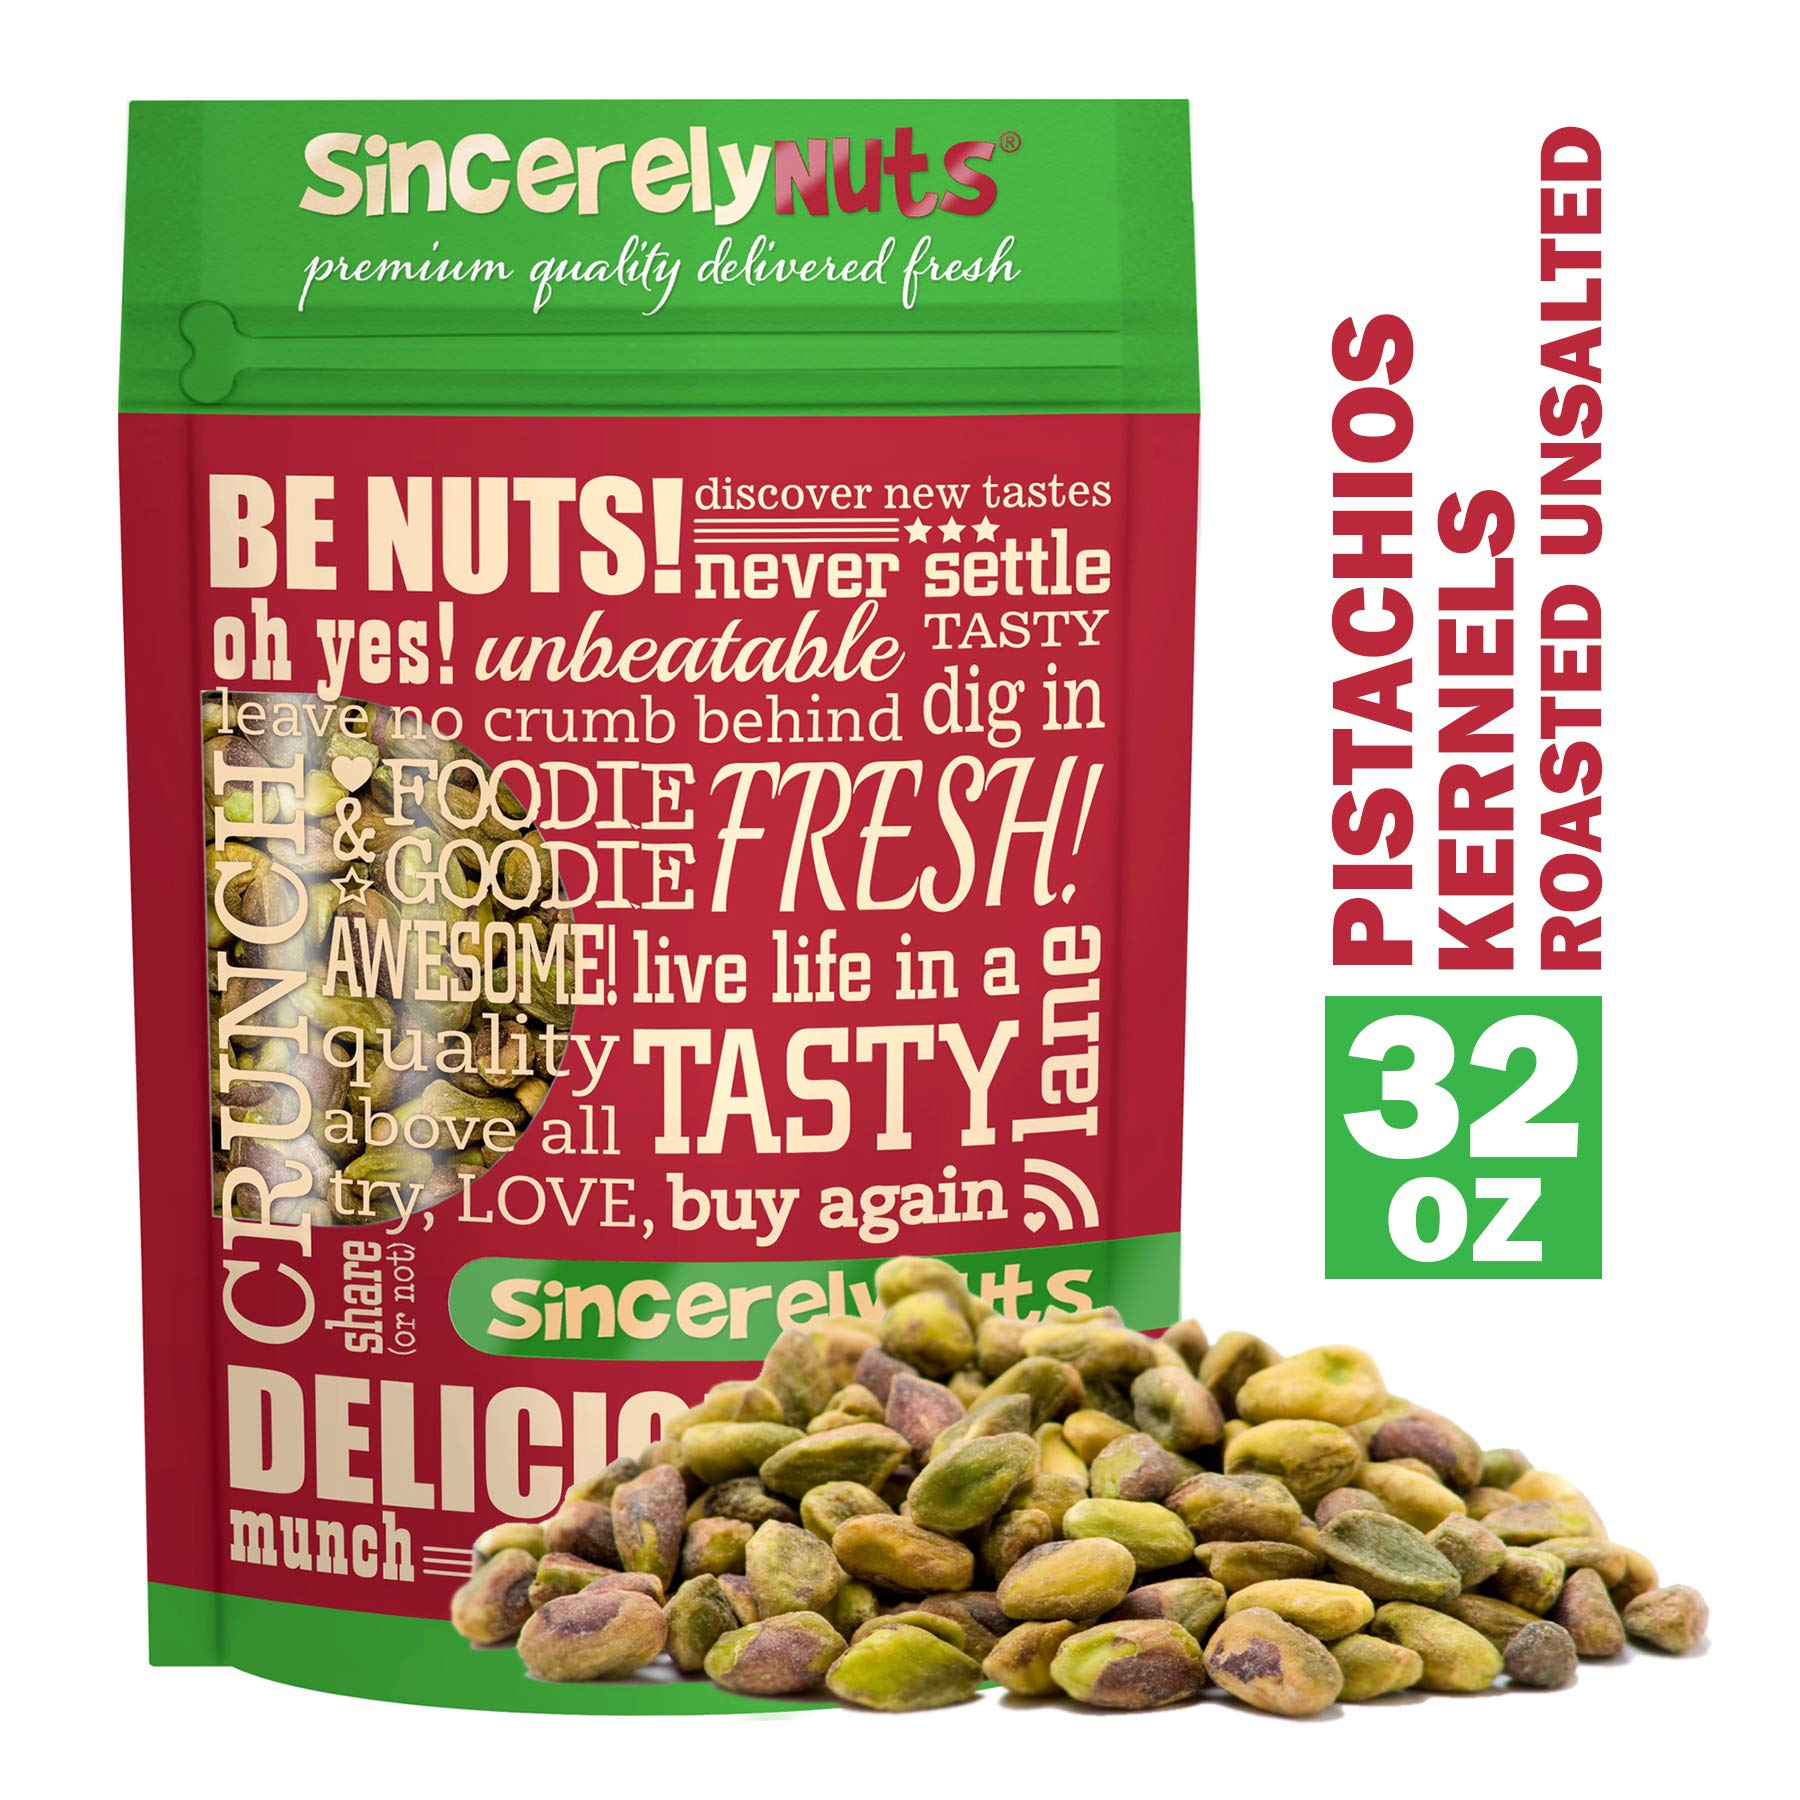 Sincerely Nuts Pistachios Roasted & Unsalted Kernels (No Shell) - 2 Lb. Bag - Healthy Snack Food | Great for Cooking | Source of Fiber, Protein & Vitamins | Gourmet | Vegan, Kosher & Gluten Free by Sincerely Nuts